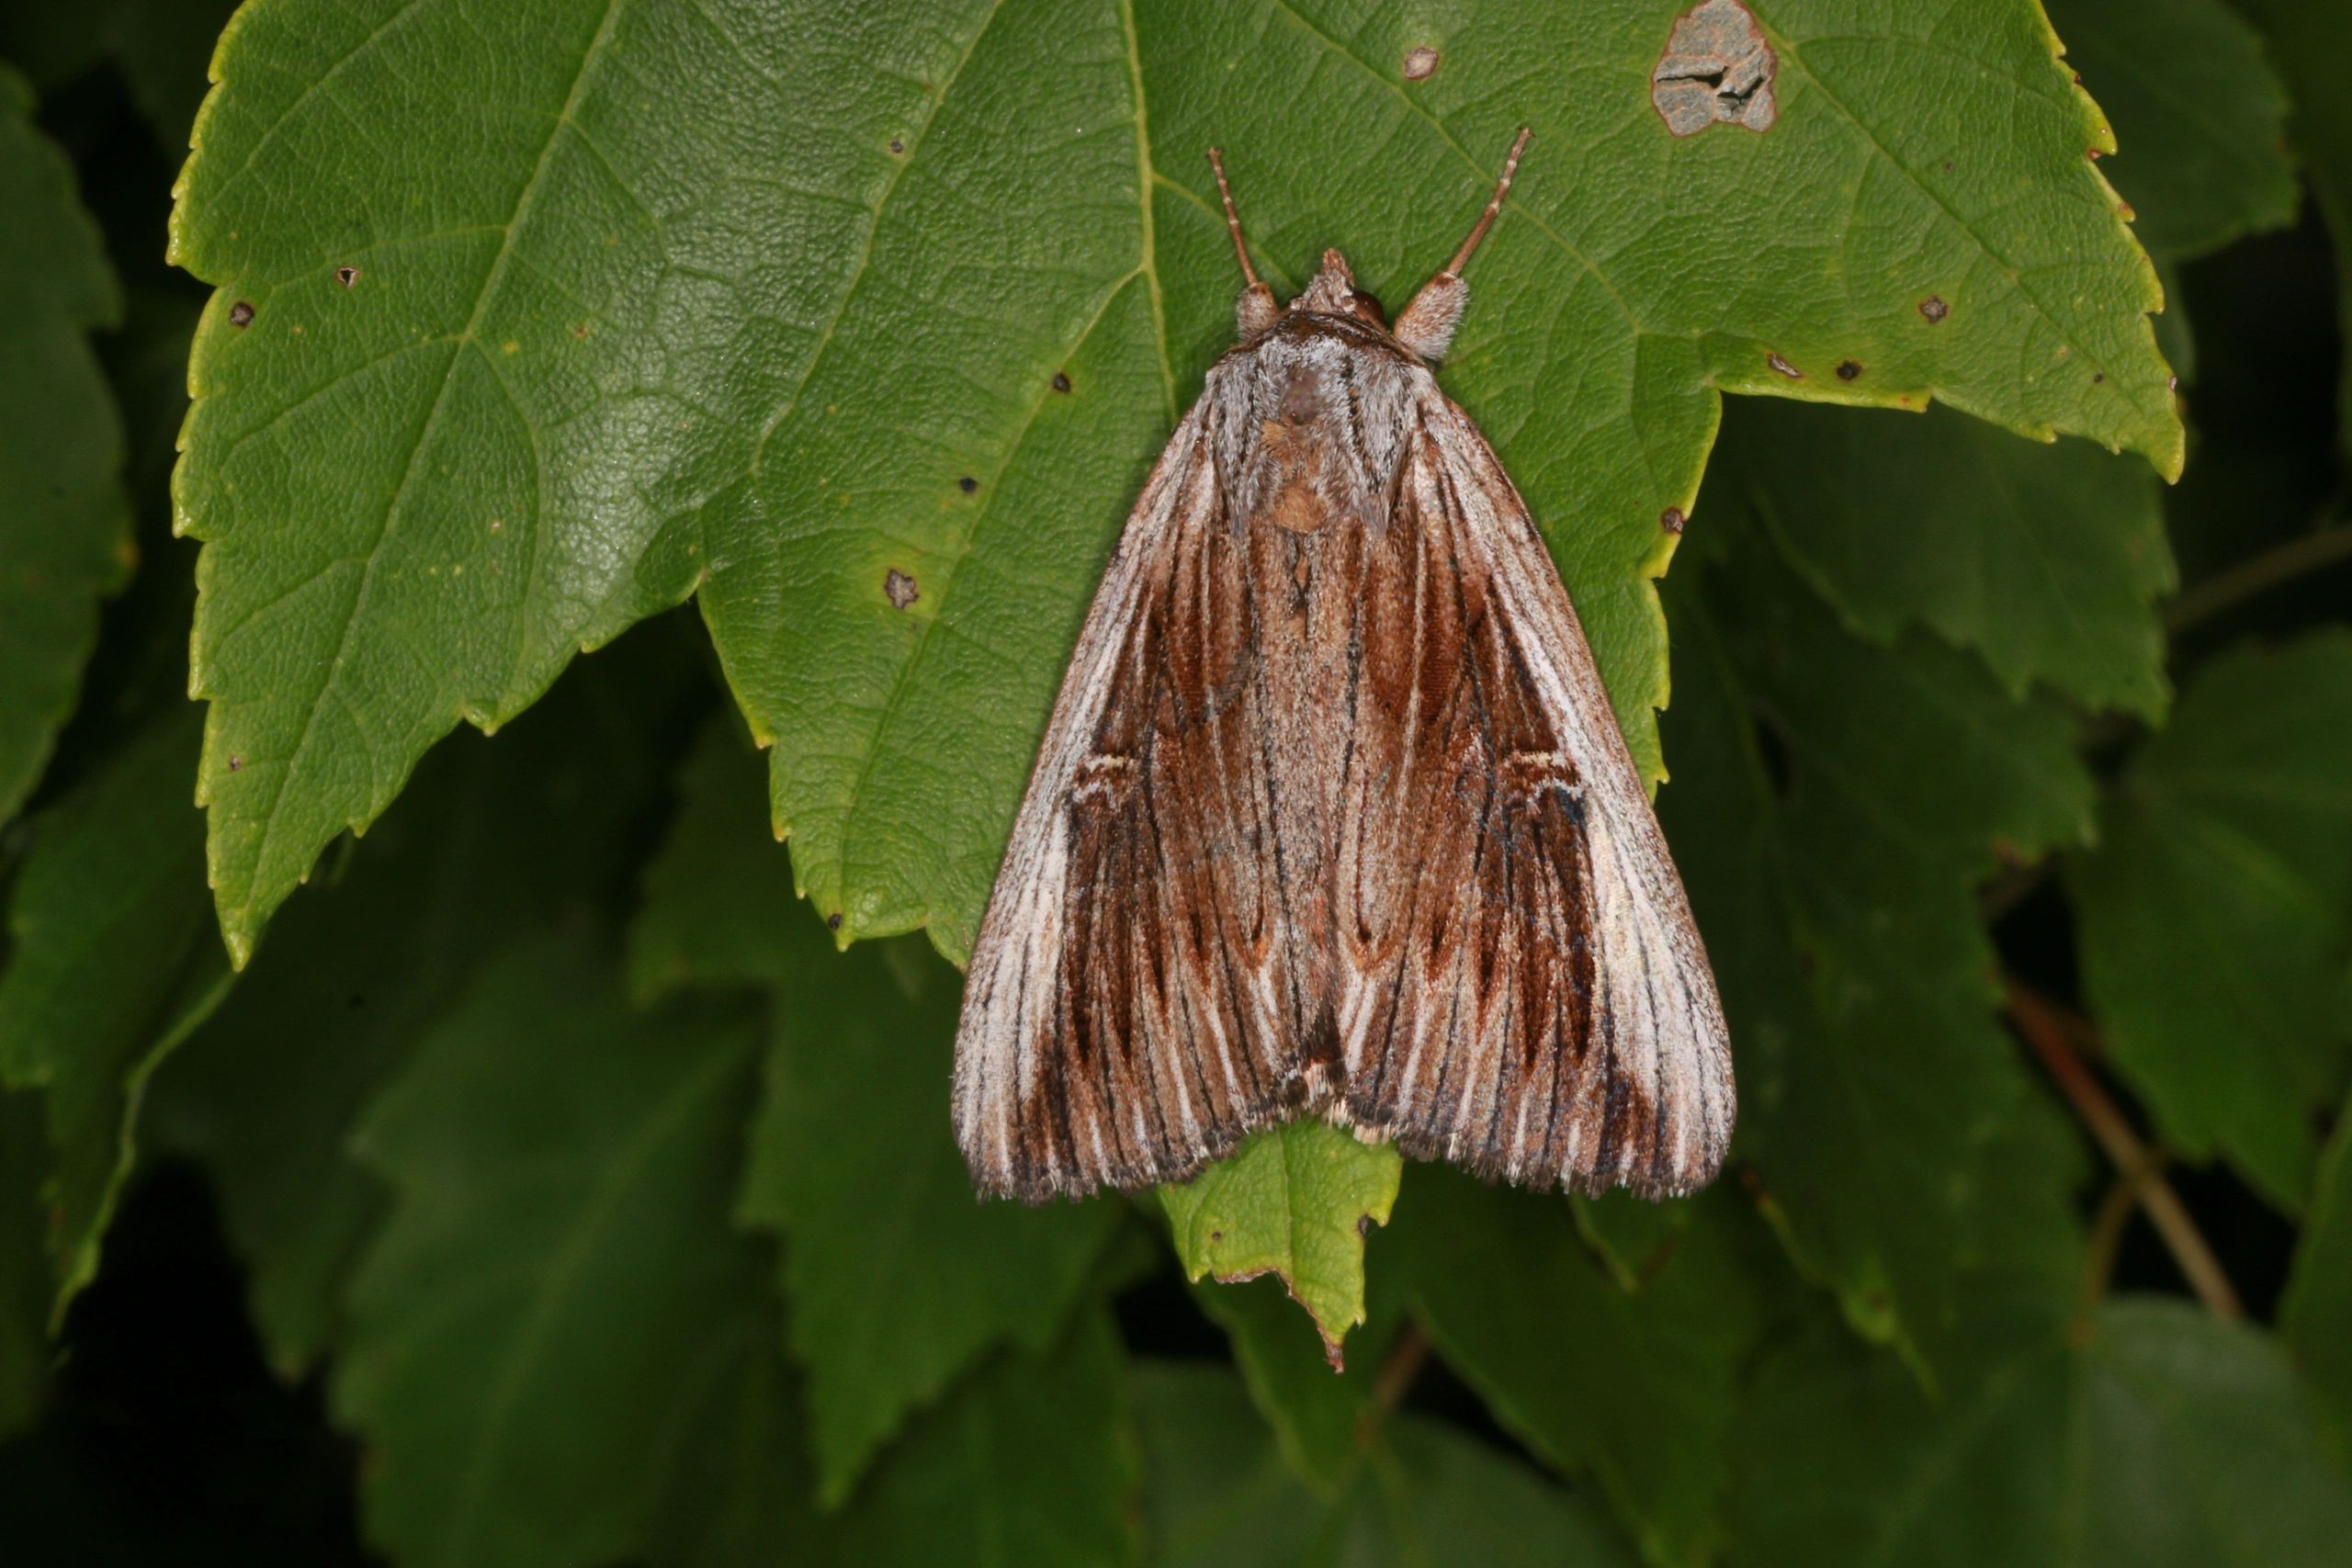 The Pine Barrens Underwing (Catocala herodias gerhardi)